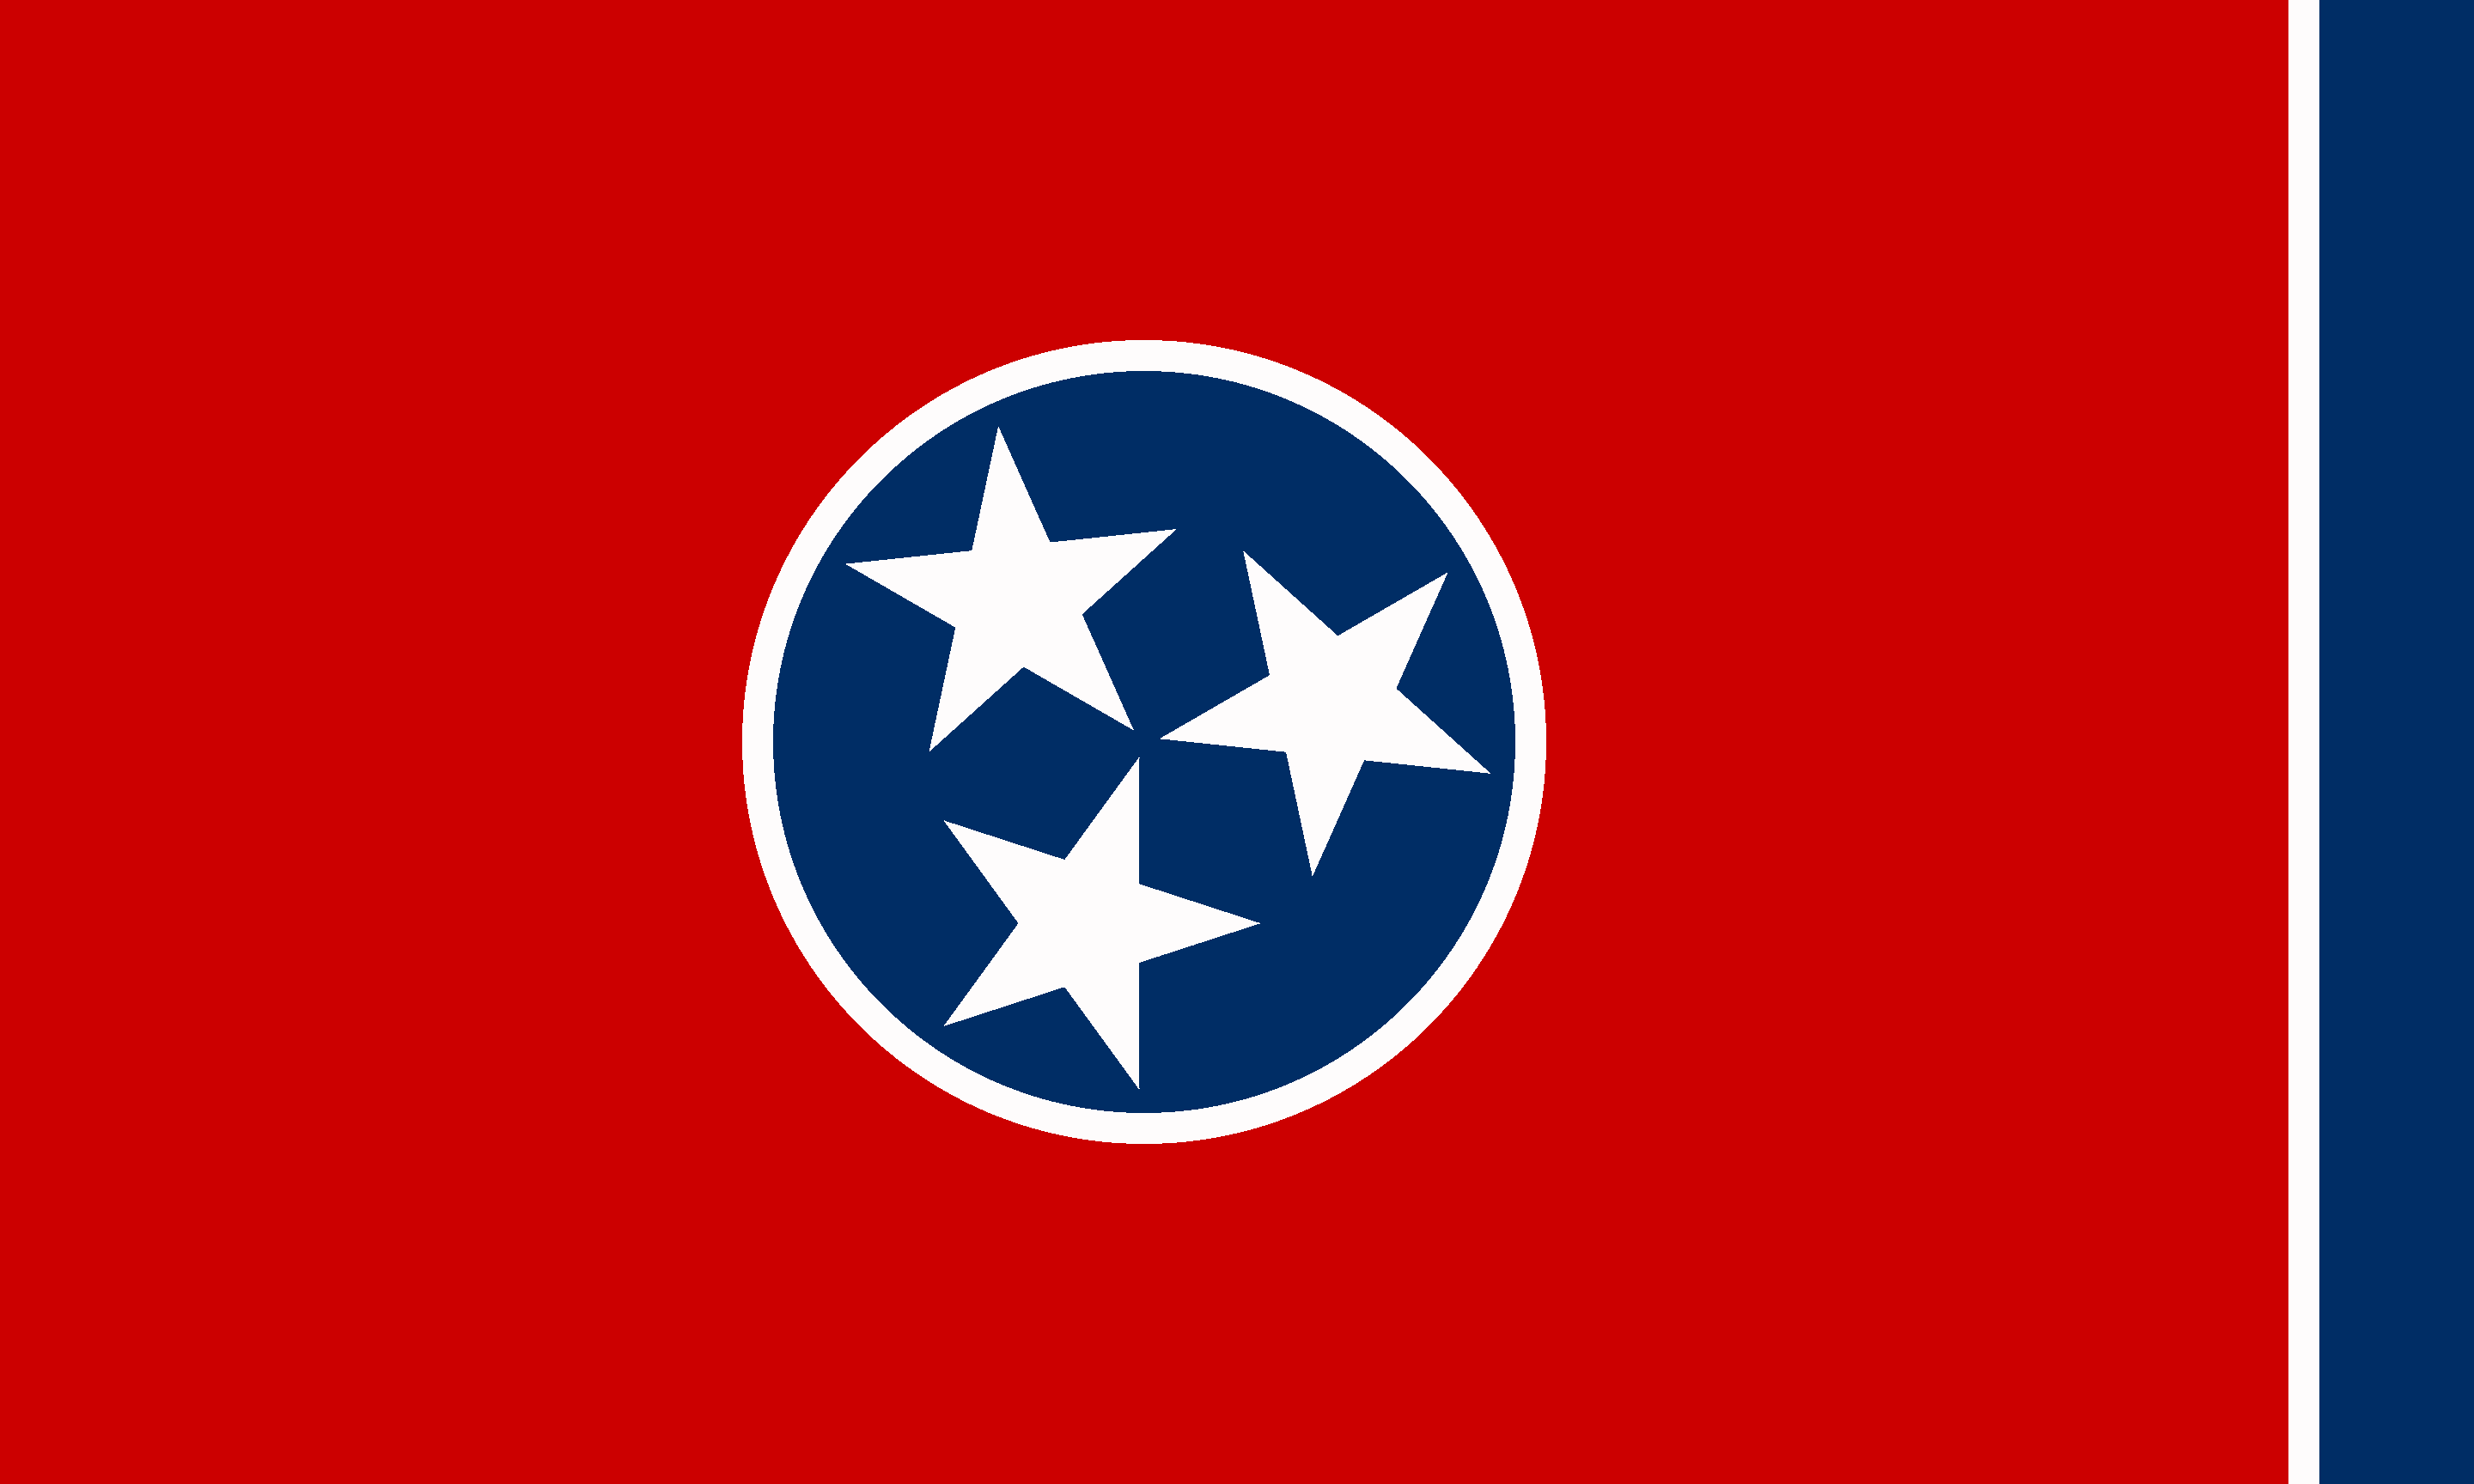 Tennessee Flag - State of Tennessee Drone Laws